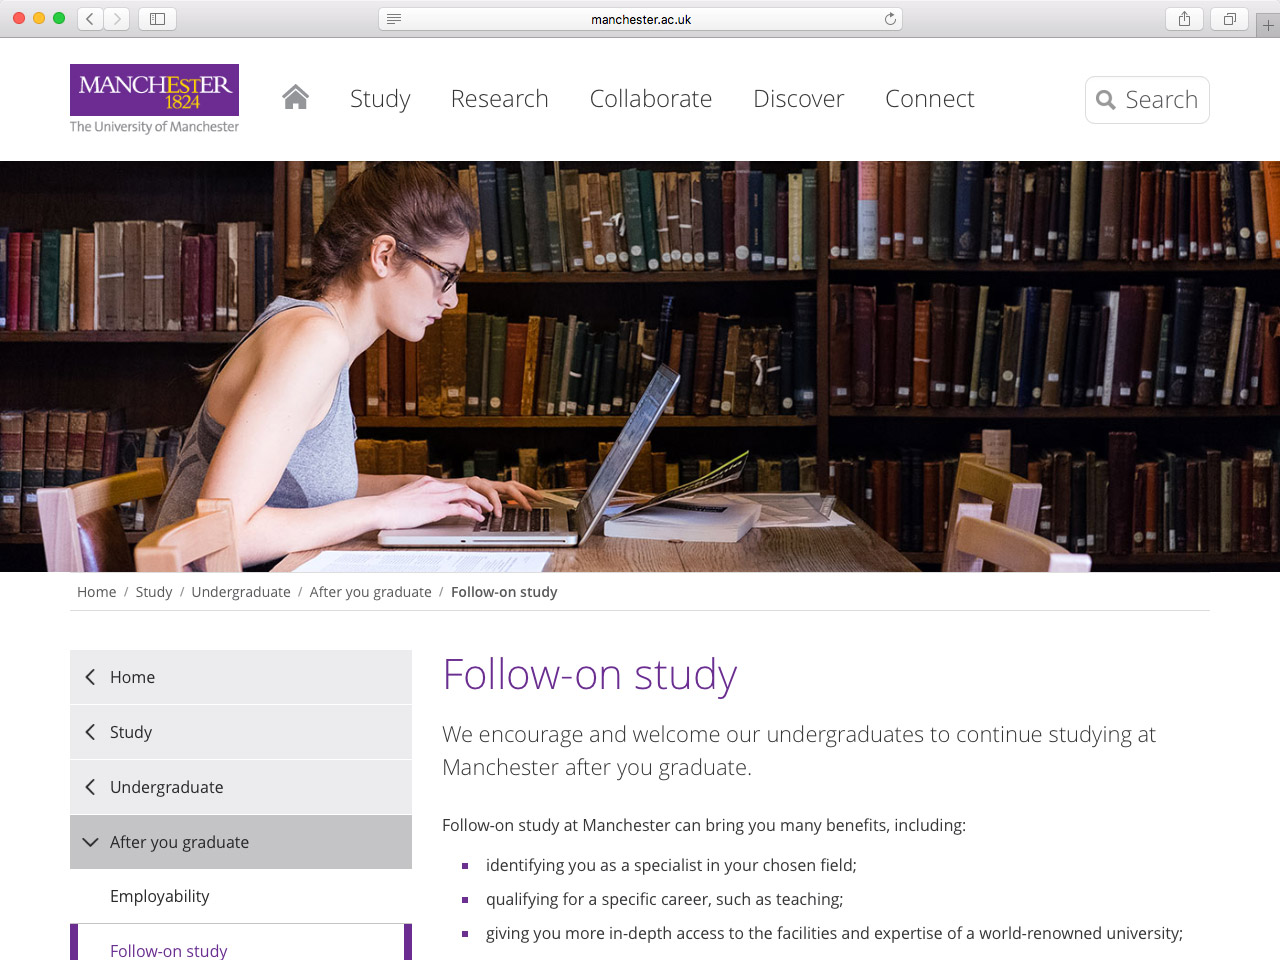 A real-world example of breadcrumbs on the University of Manchester website